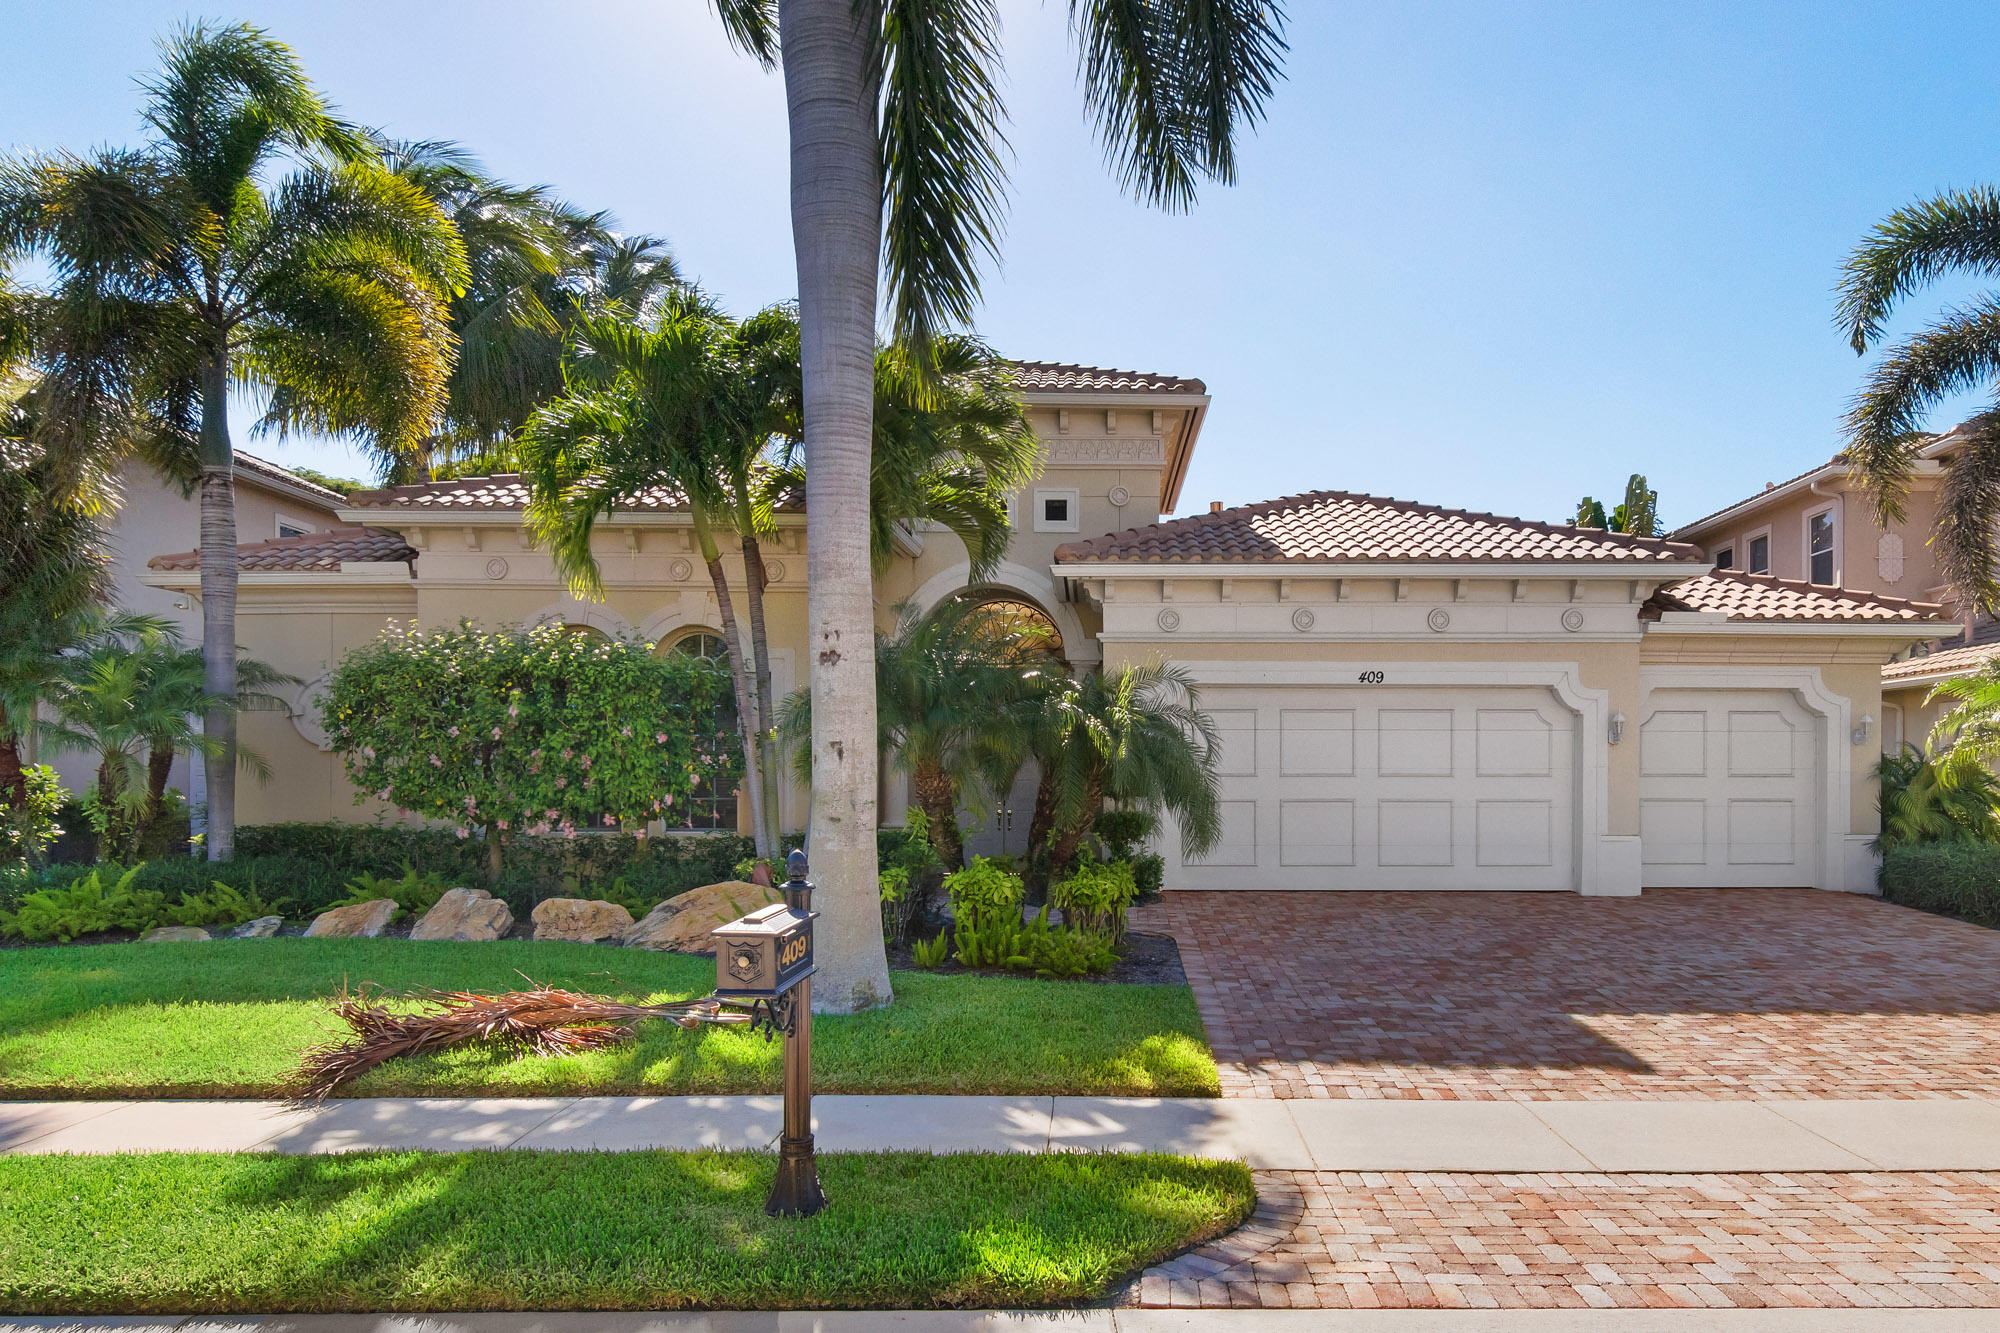 New Home for sale at 409 Savoie Drive in Palm Beach Gardens